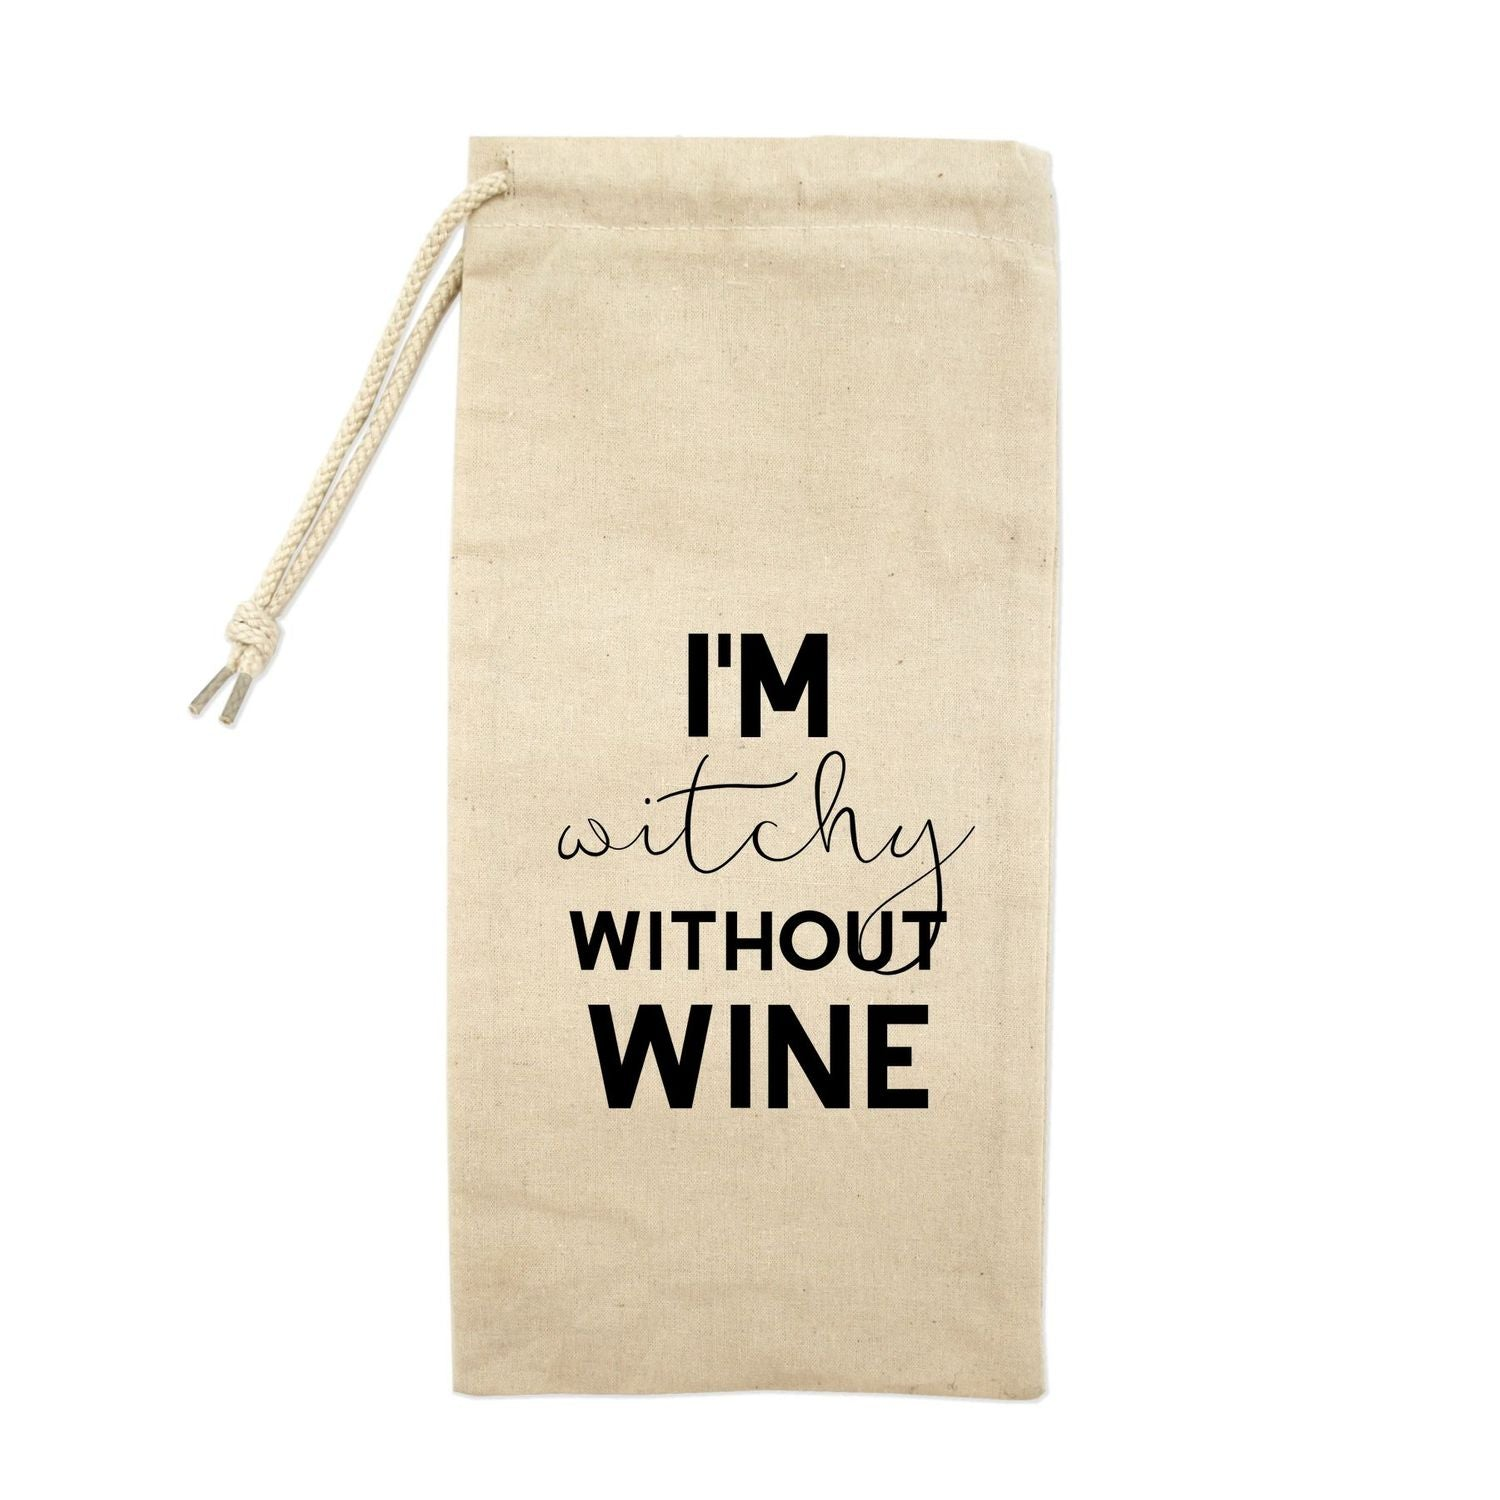 I'm Witchy Without Wine Drawstring Wine Tote